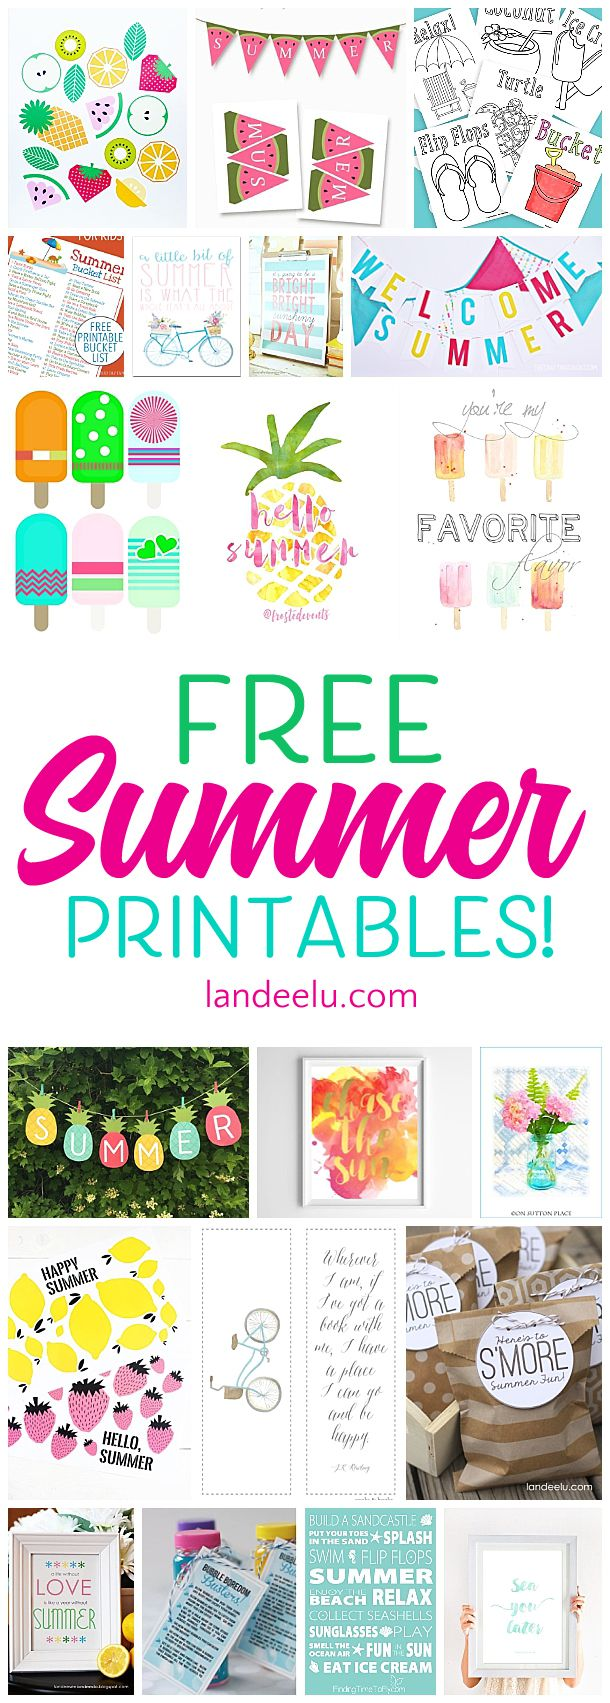 This is an awesome collection of free summer printables! Games, banners, bucket lists and more. So fun and useful for summer!